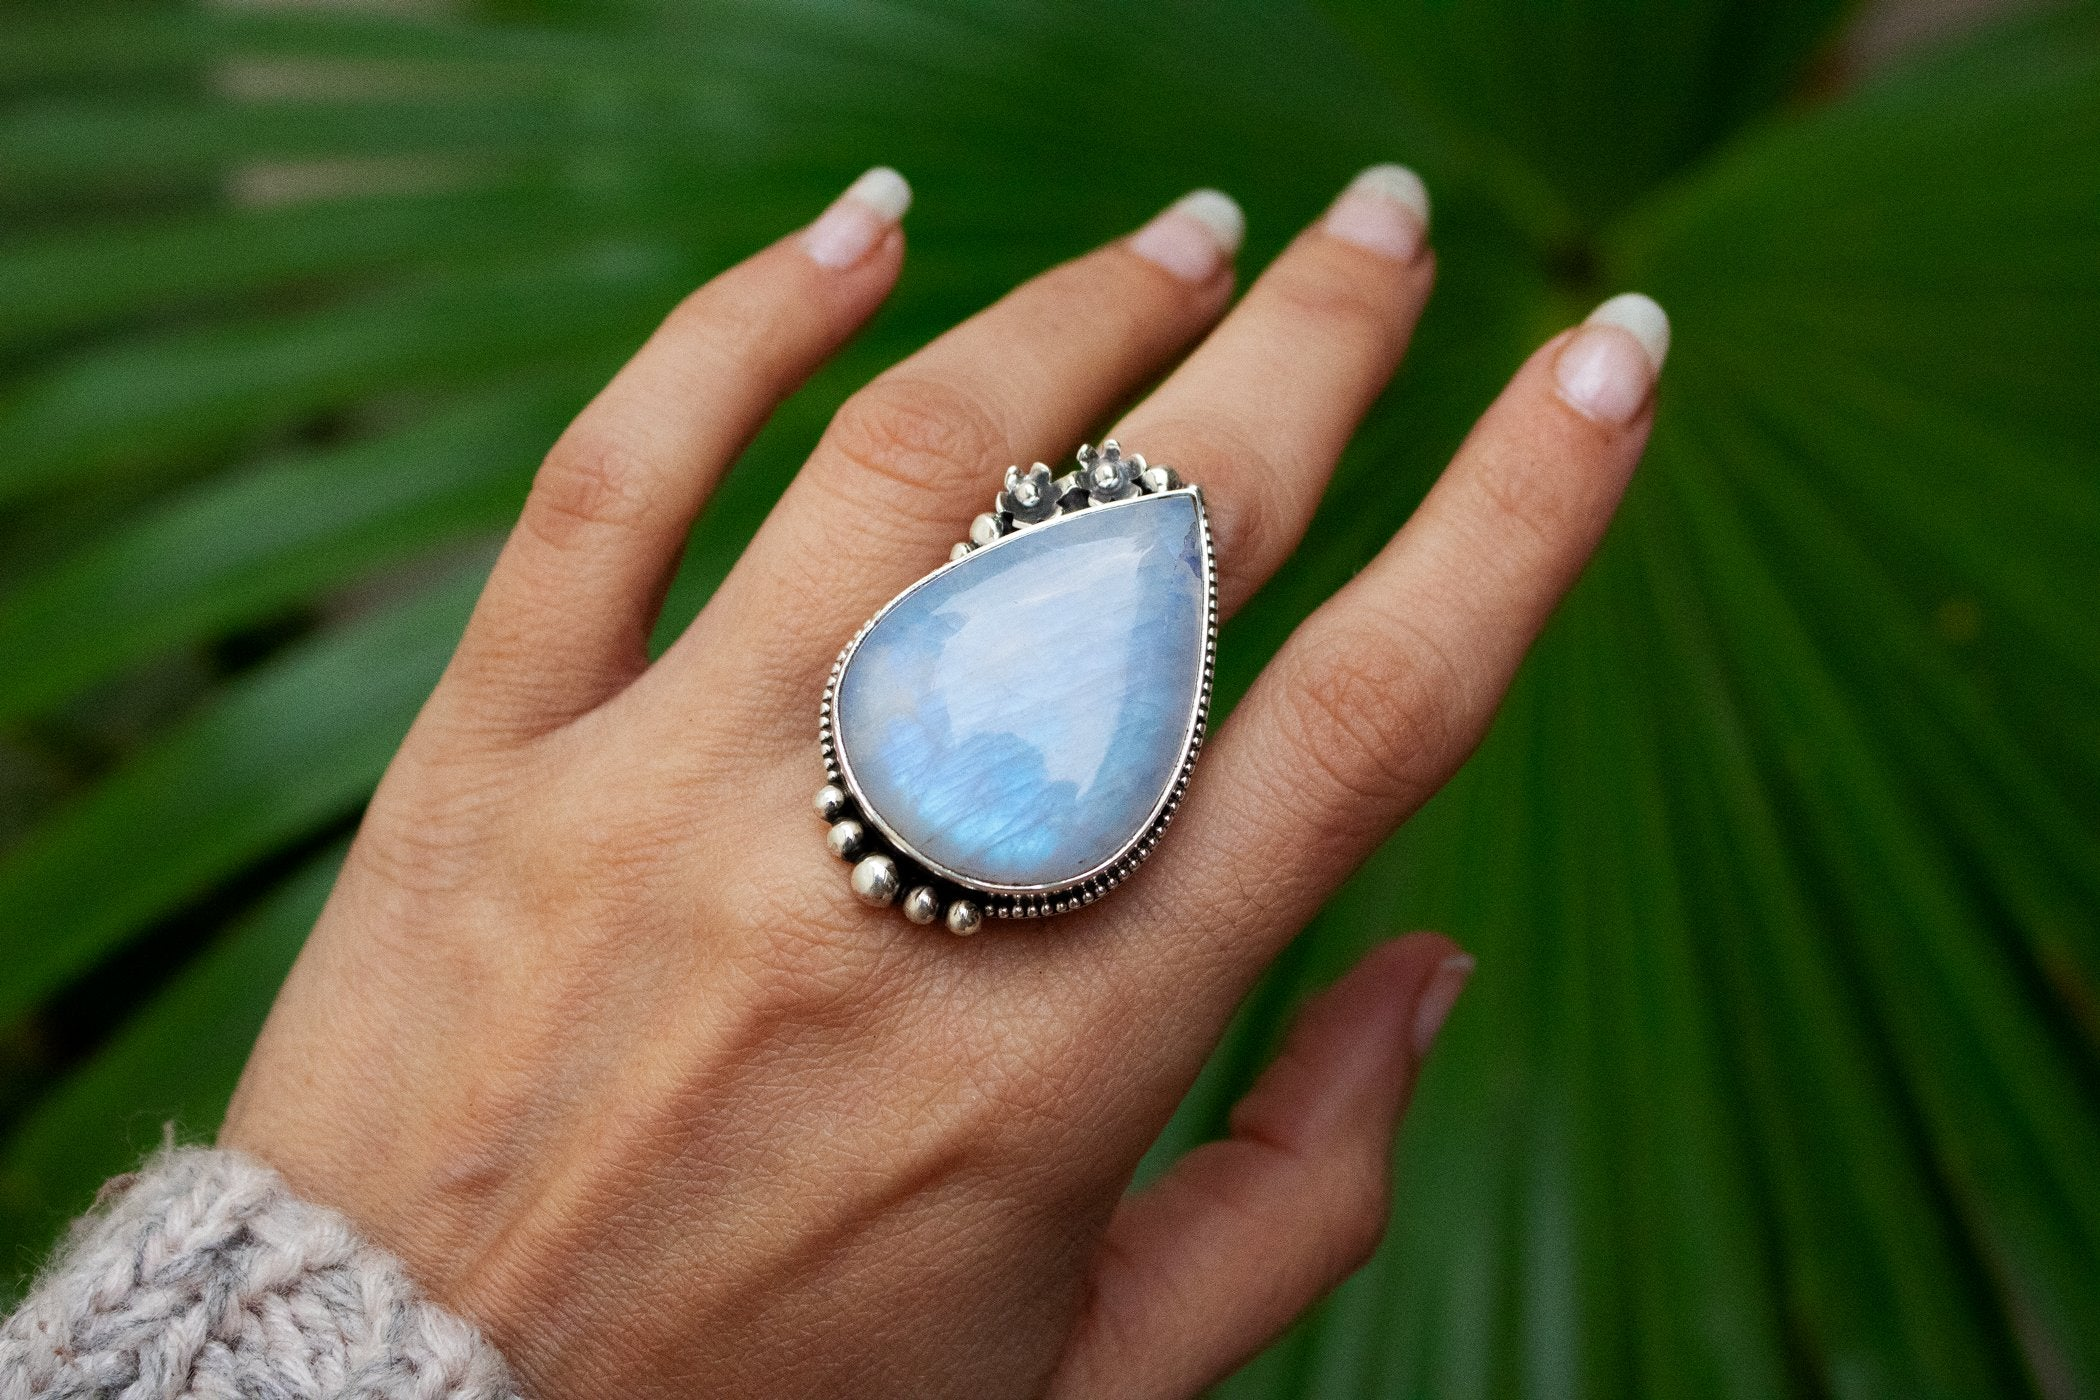 Moonstone Gemstone 925 Sterling Silver Ring, Moonstone Jewelry, Boho Ring, Rainbow Moonstone Ring, Natural Moonstone Ring, Fertility Ring AR-1100